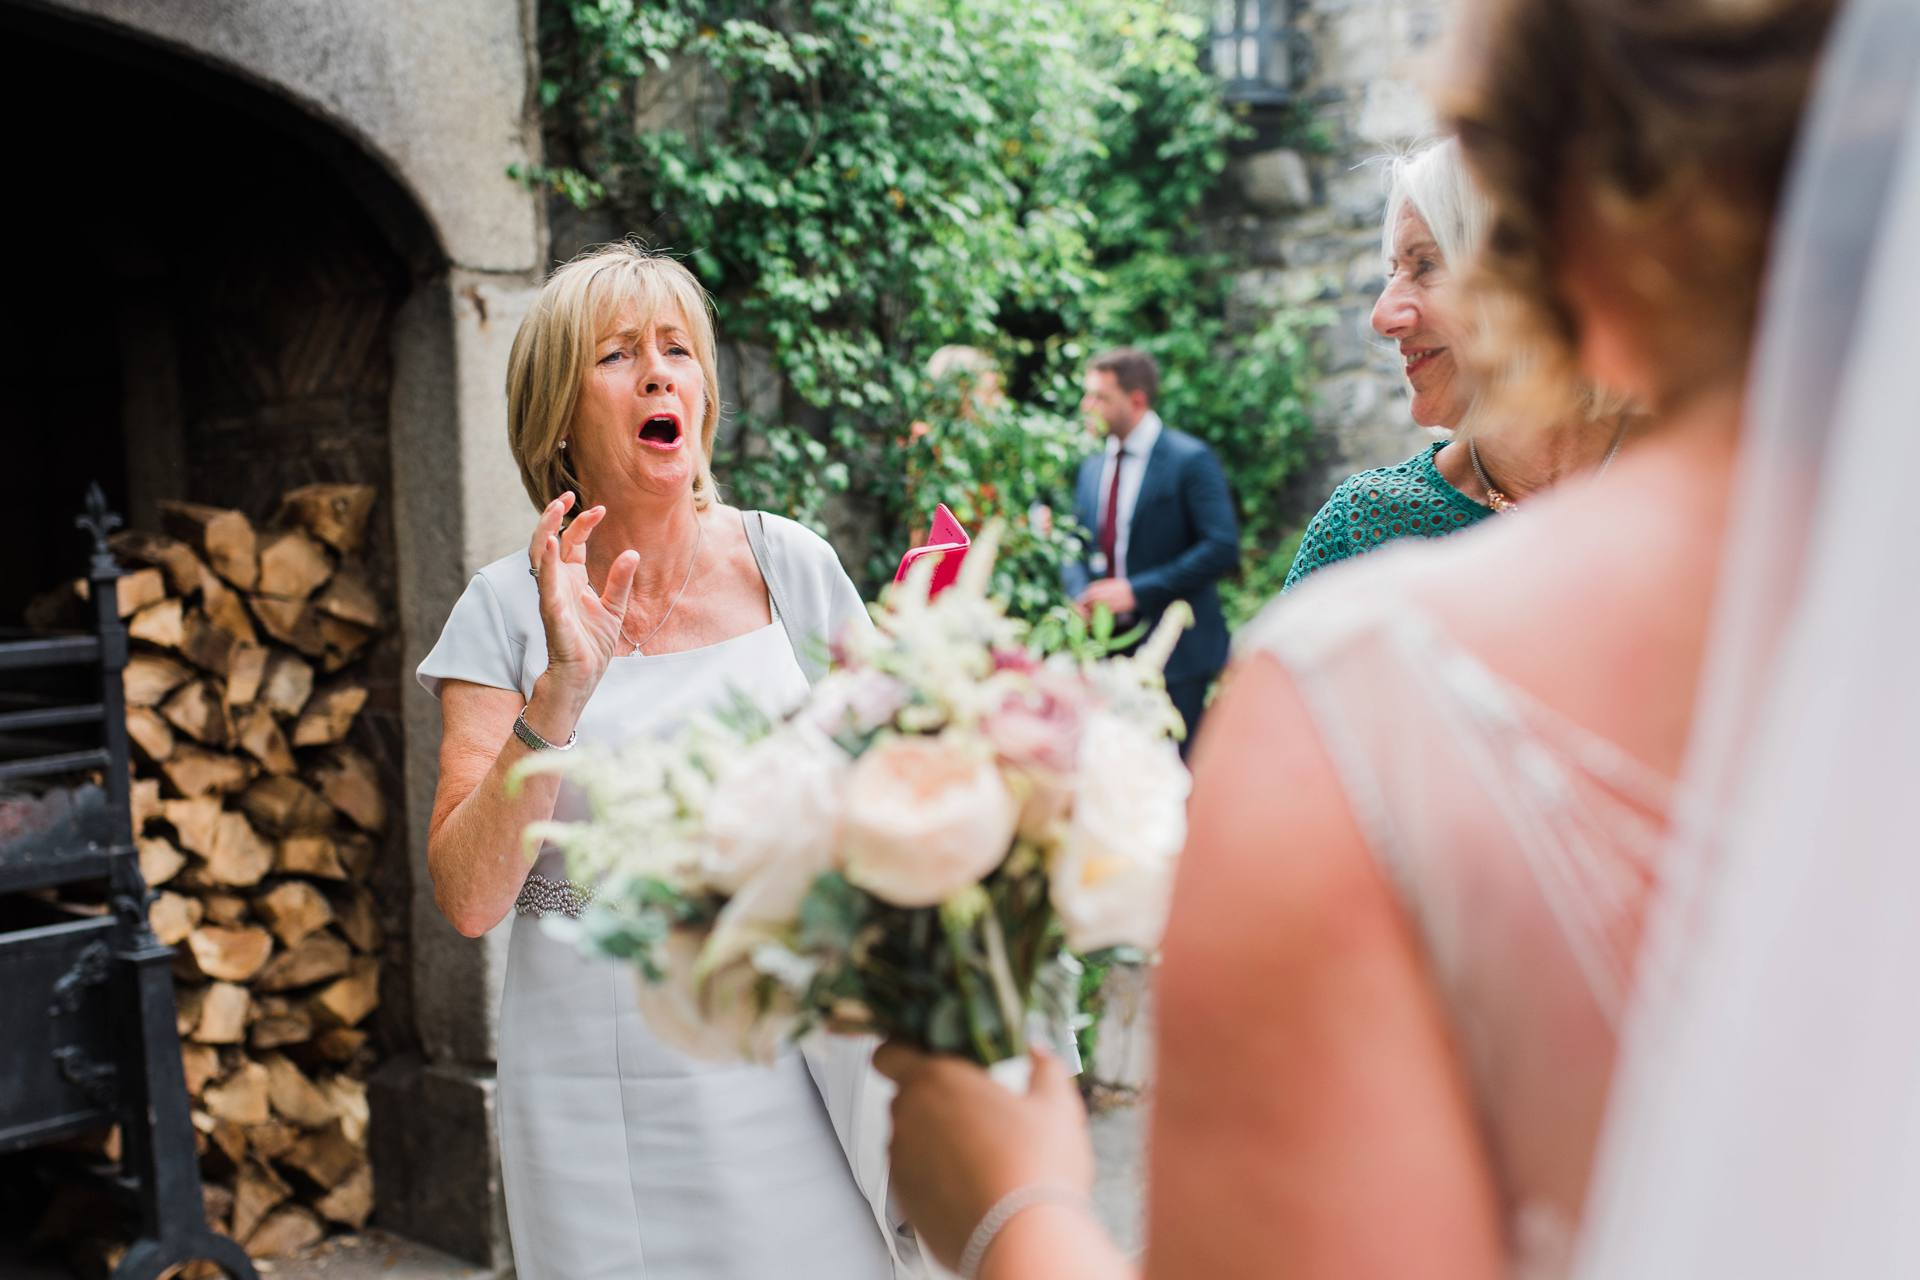 A guest exclaiming in surprise when she sees the bride